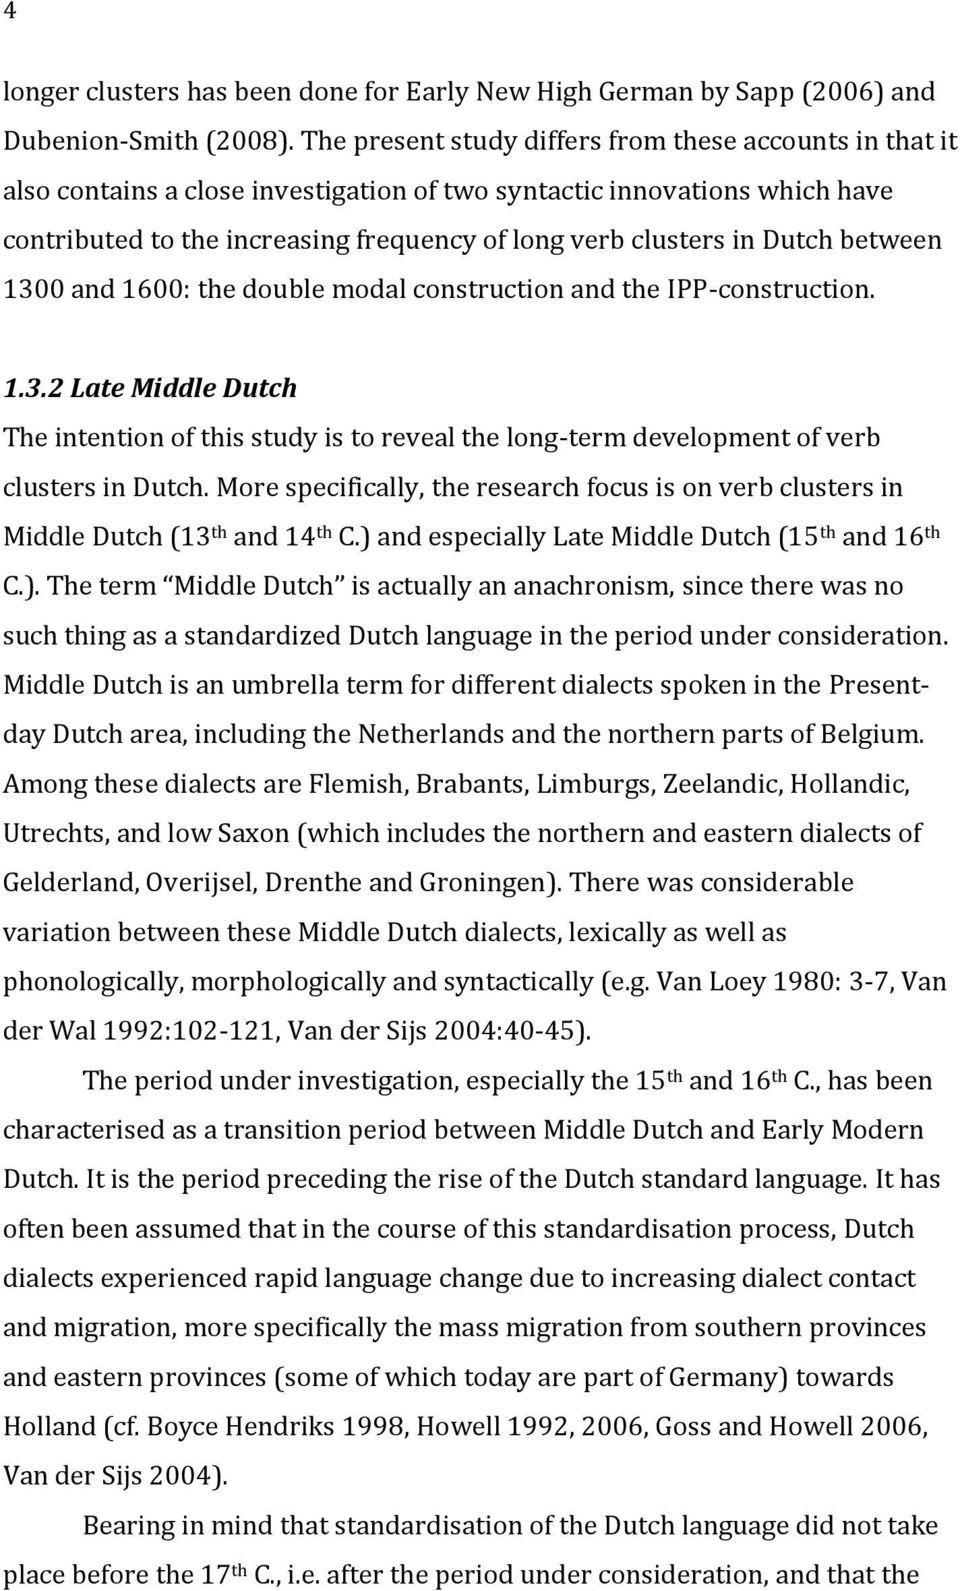 Dutch between 1300 and 1600: the double modal construction and the IPP-construction. 1.3.2 Late Middle Dutch The intention of this study is to reveal the long-term development of verb clusters in Dutch.